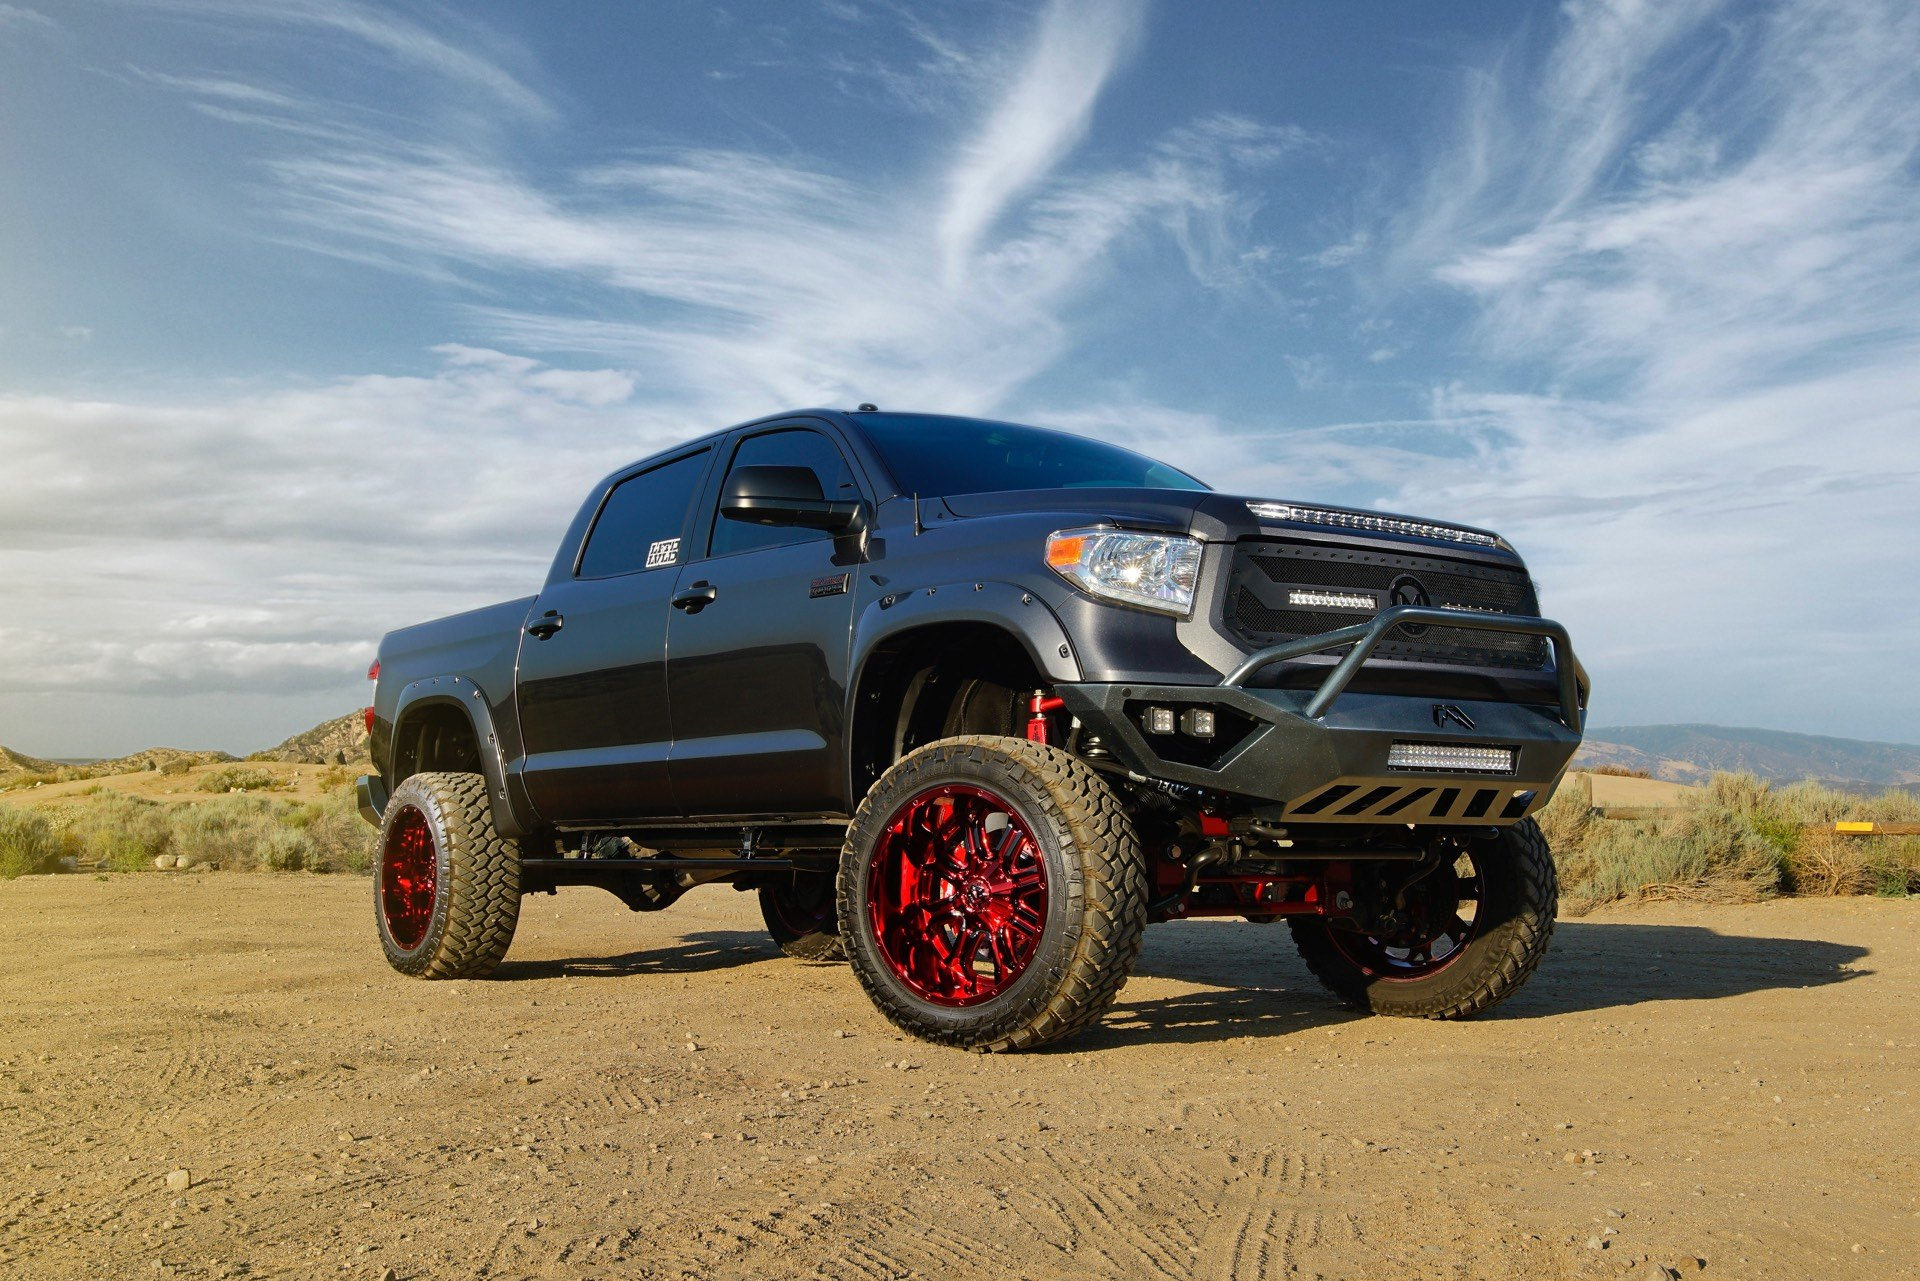 2016 Toyota Tacoma Lifted >> Custom 2016 Toyota Tundra | Images, Mods, Photos, Upgrades — CARiD.com Gallery